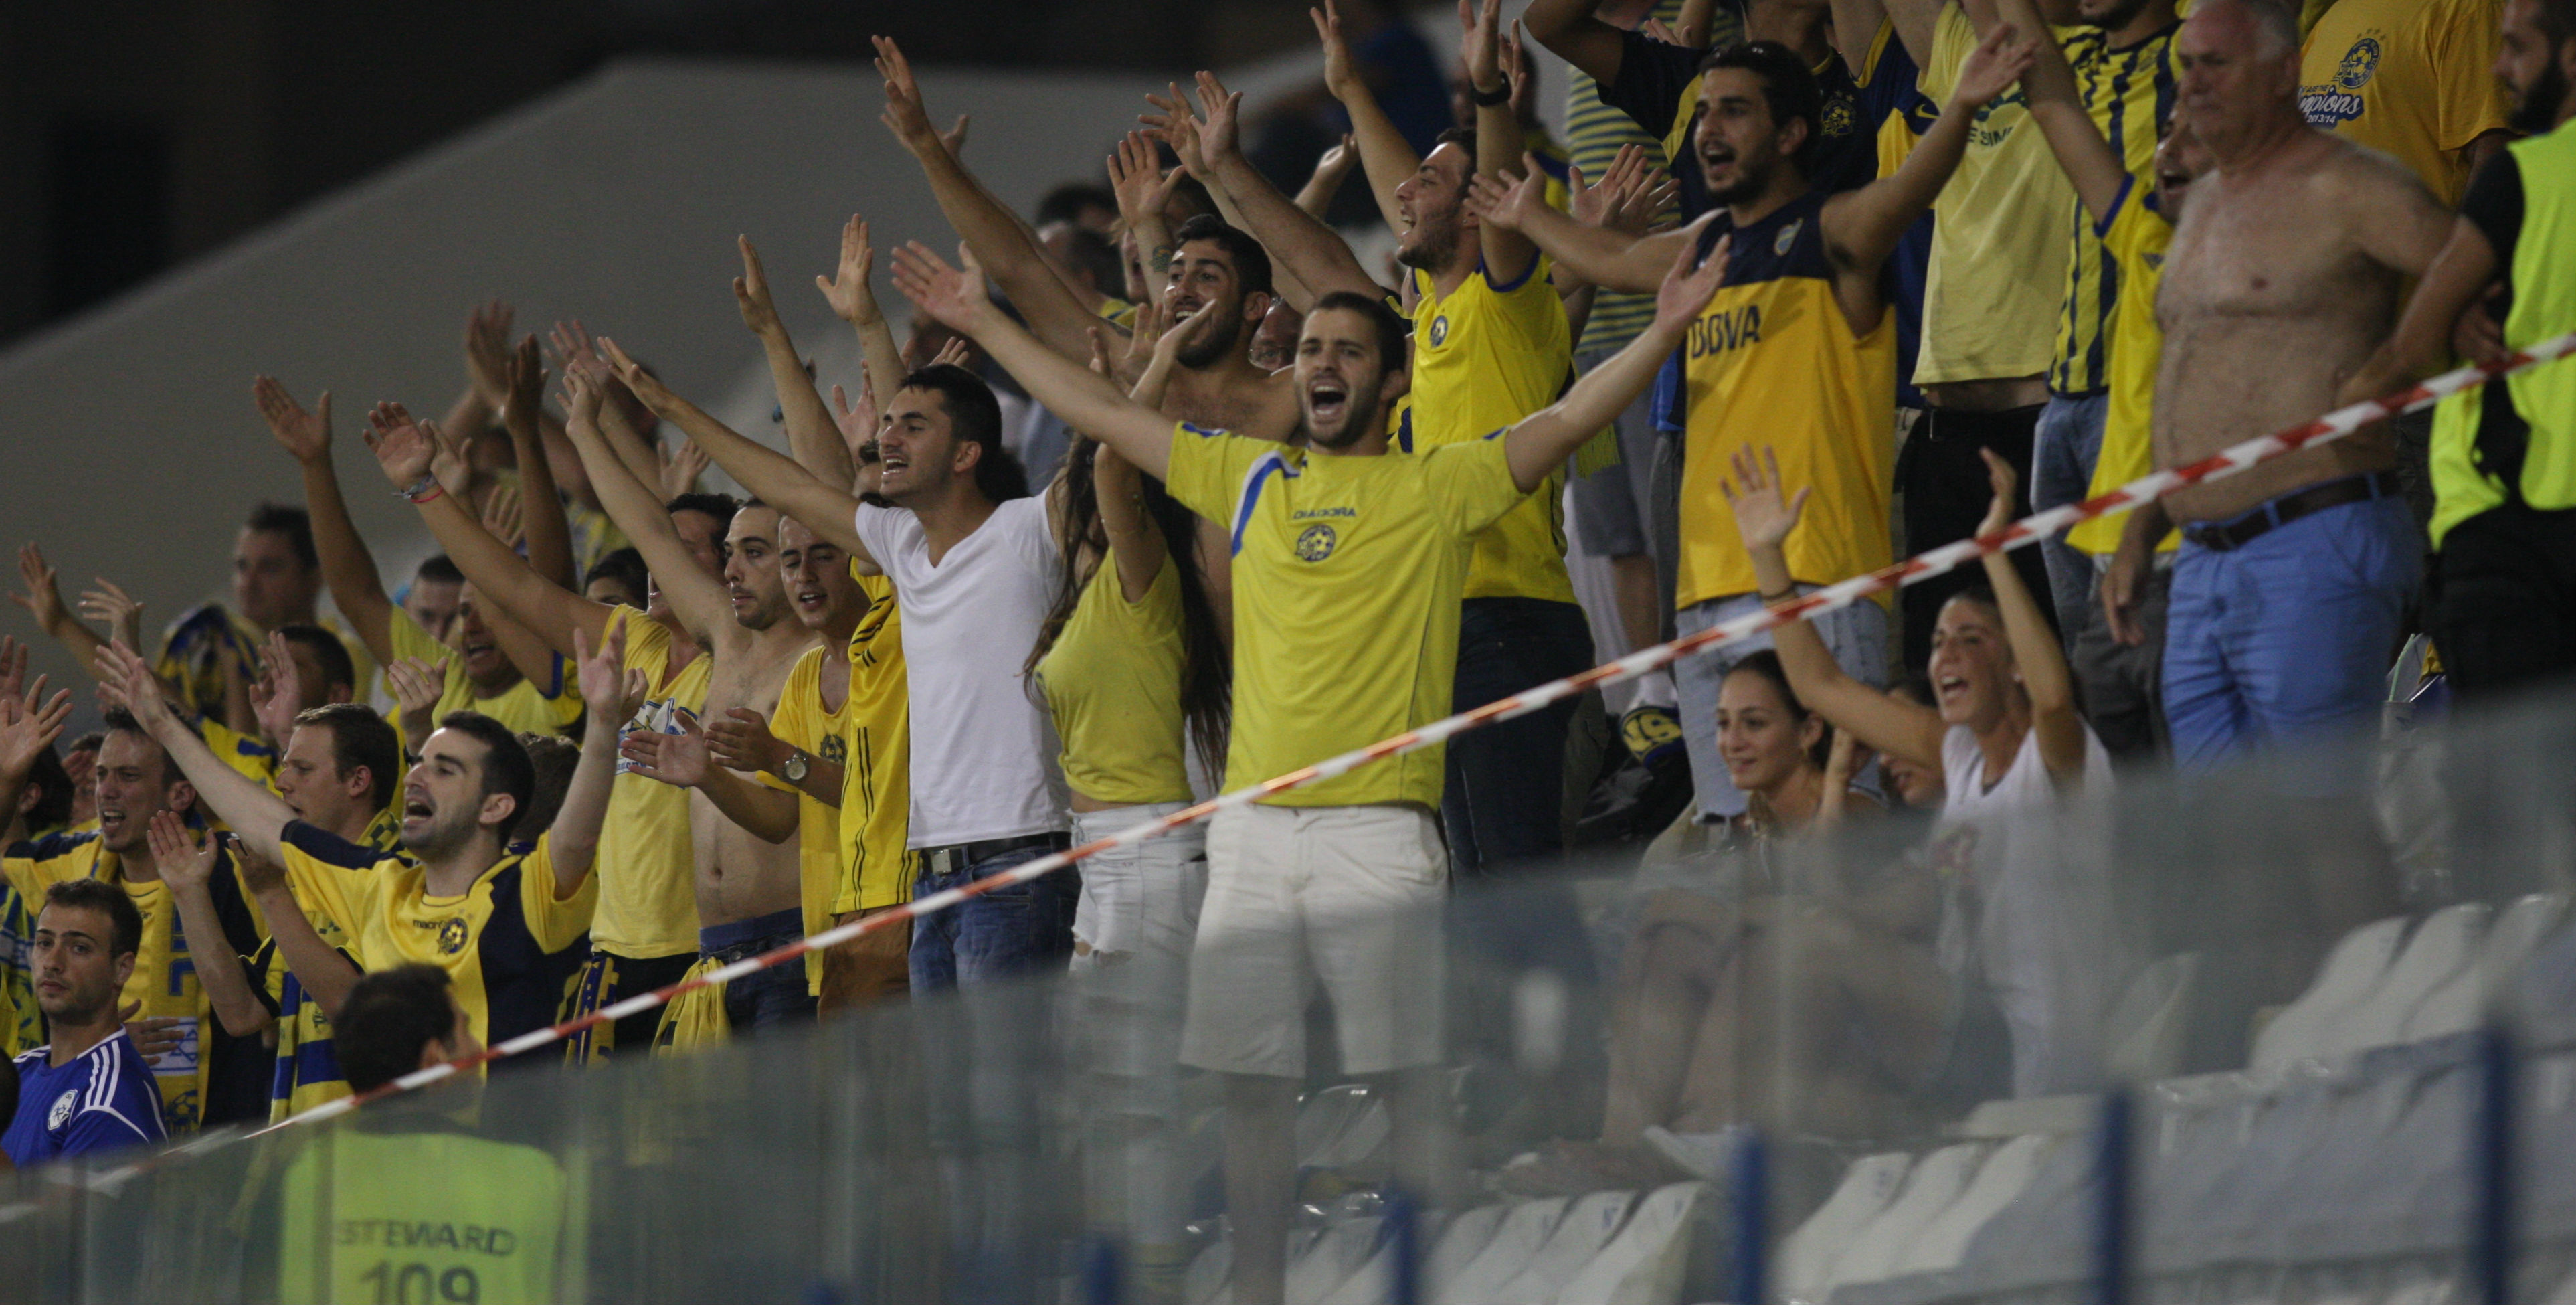 Maccabi Suppoters in Cyprus-Courtesy Maccabi Tel Aviv Website